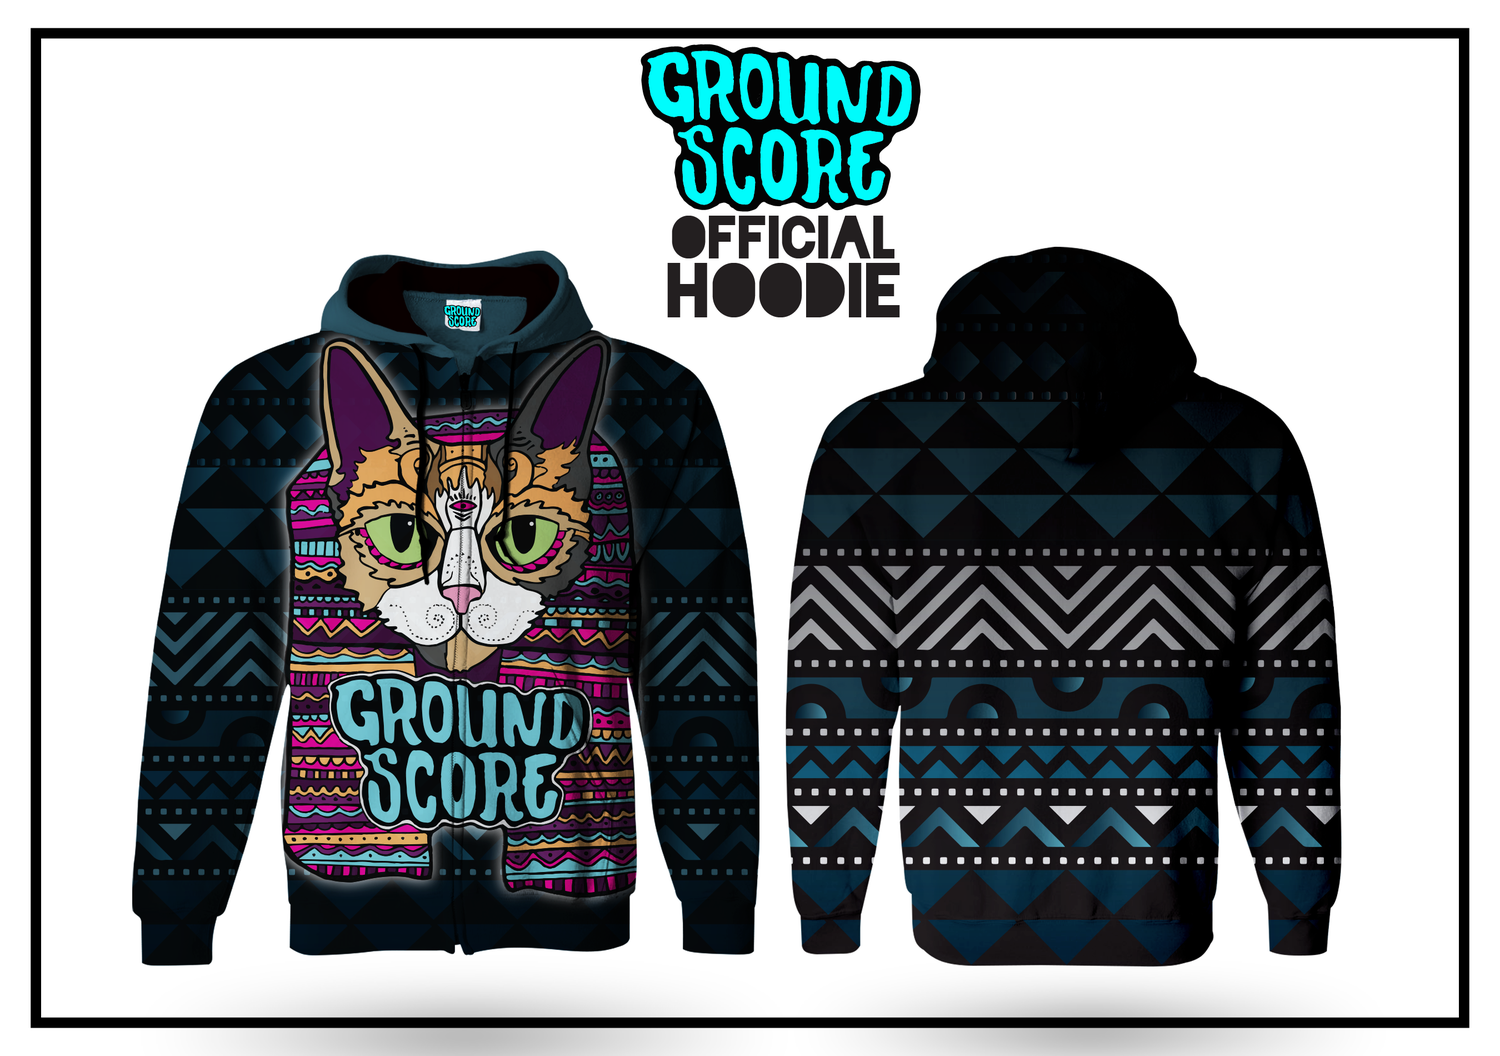 Ground Score Official Hoodie